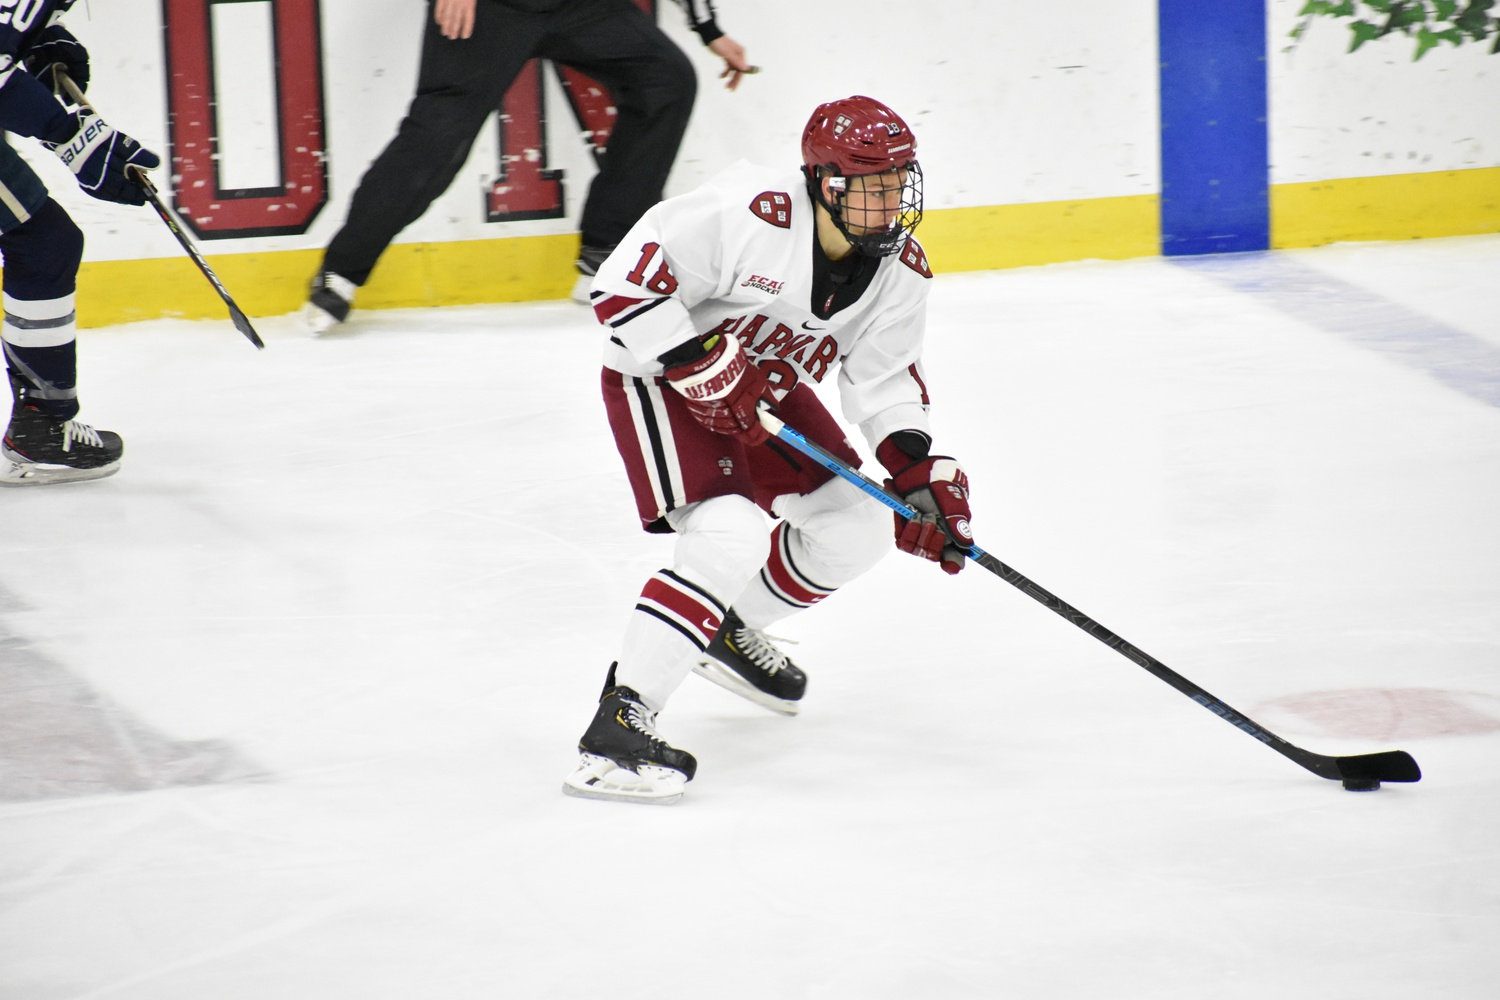 Abruzzese's two goals and two assists mark the first four-point effort of the rookie's collegiate career.